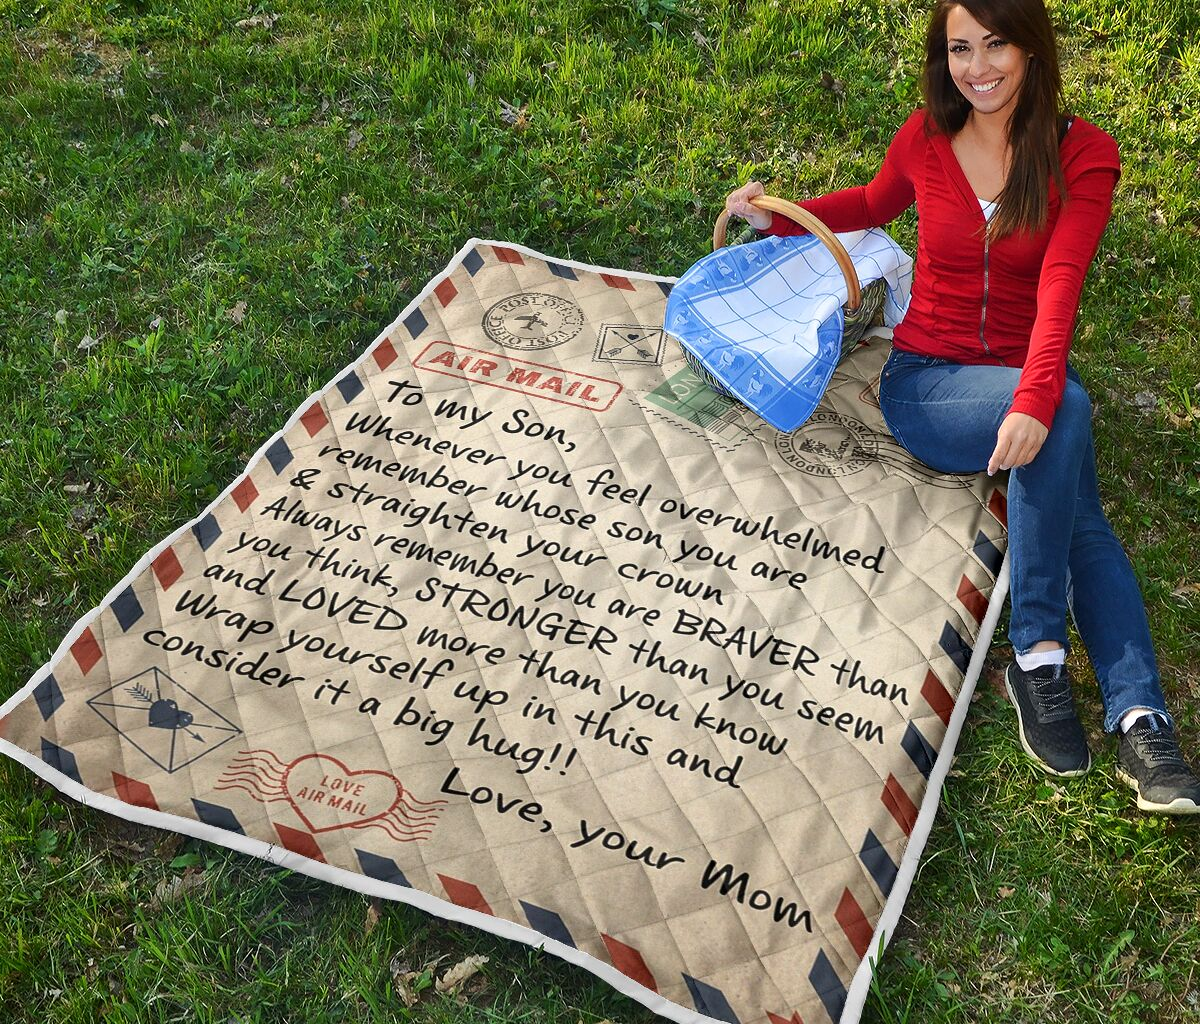 air mail letter to my son always remember you are braver than you think your mom quilt 2